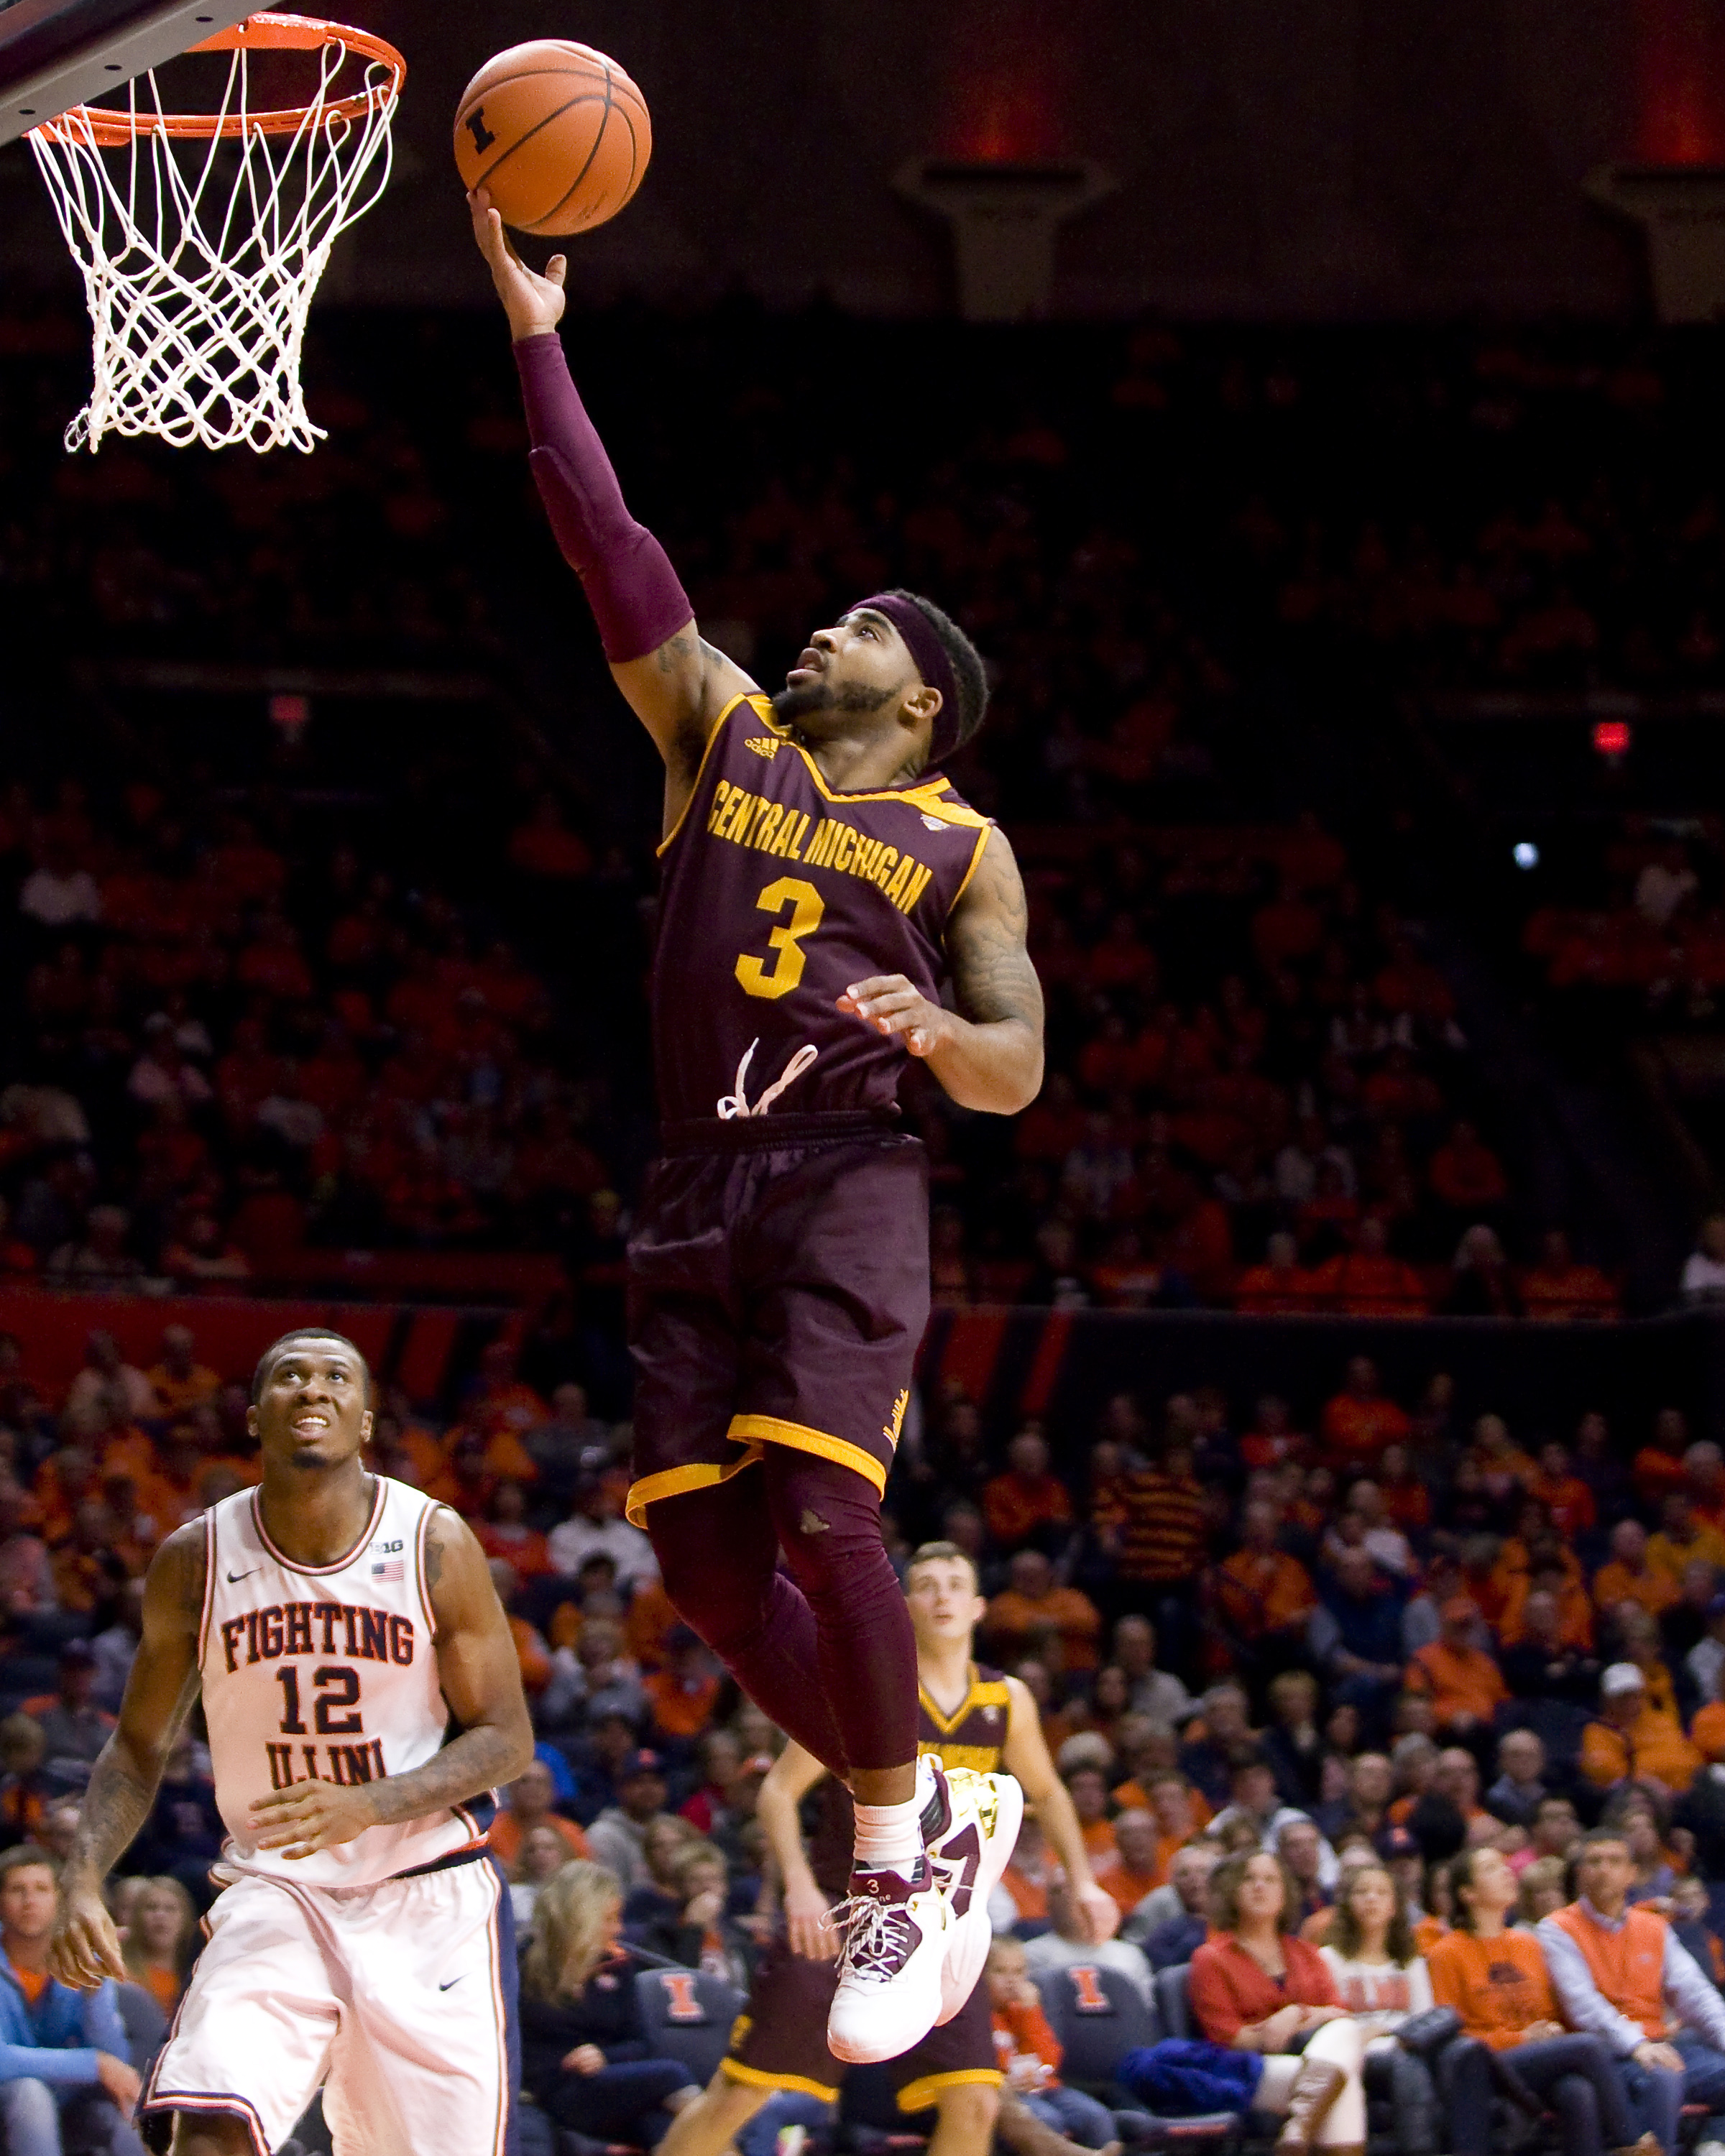 Central Michigan Basketball: Marcus Keene Gets More National Attention